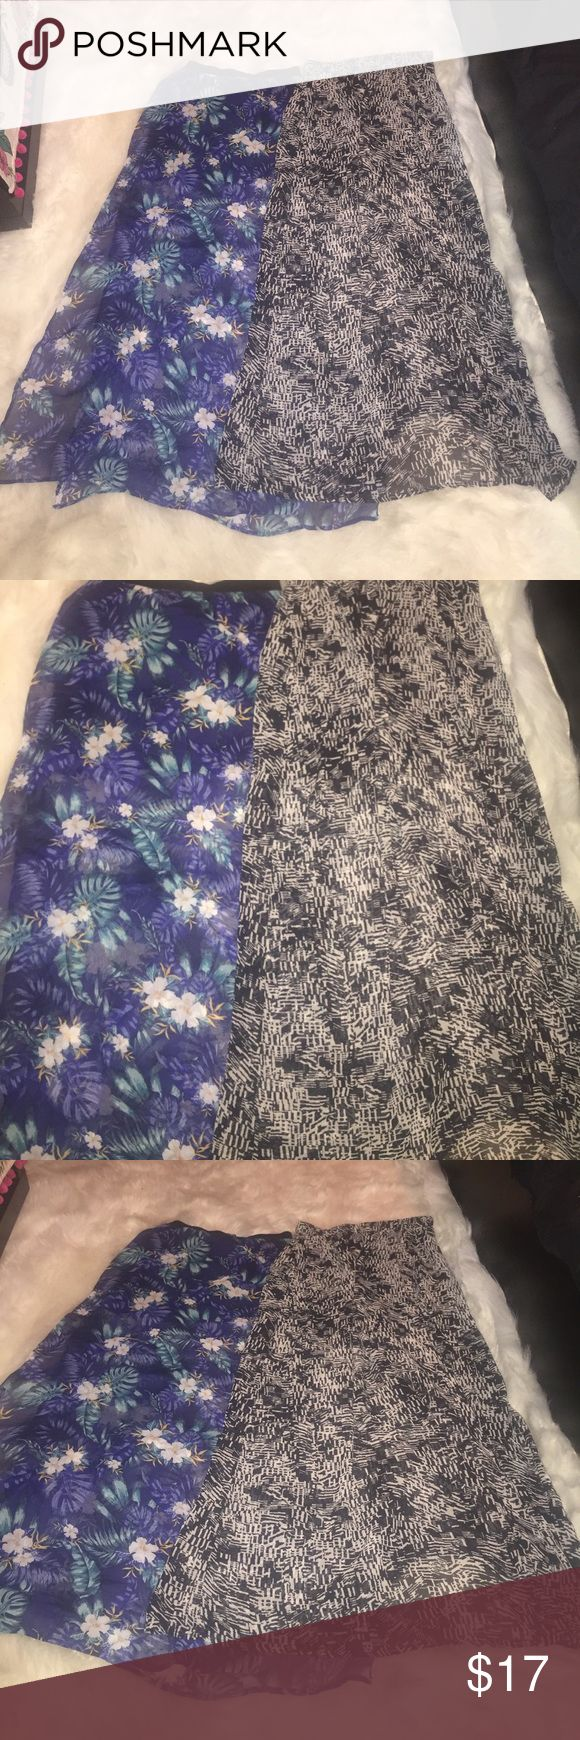 ✨black frieday sales✨2 skirts Feel free to make an offer/ the tropical skirt is from h&m size 2 and the other black skirt is from forever 21 size small Skirts Maxi